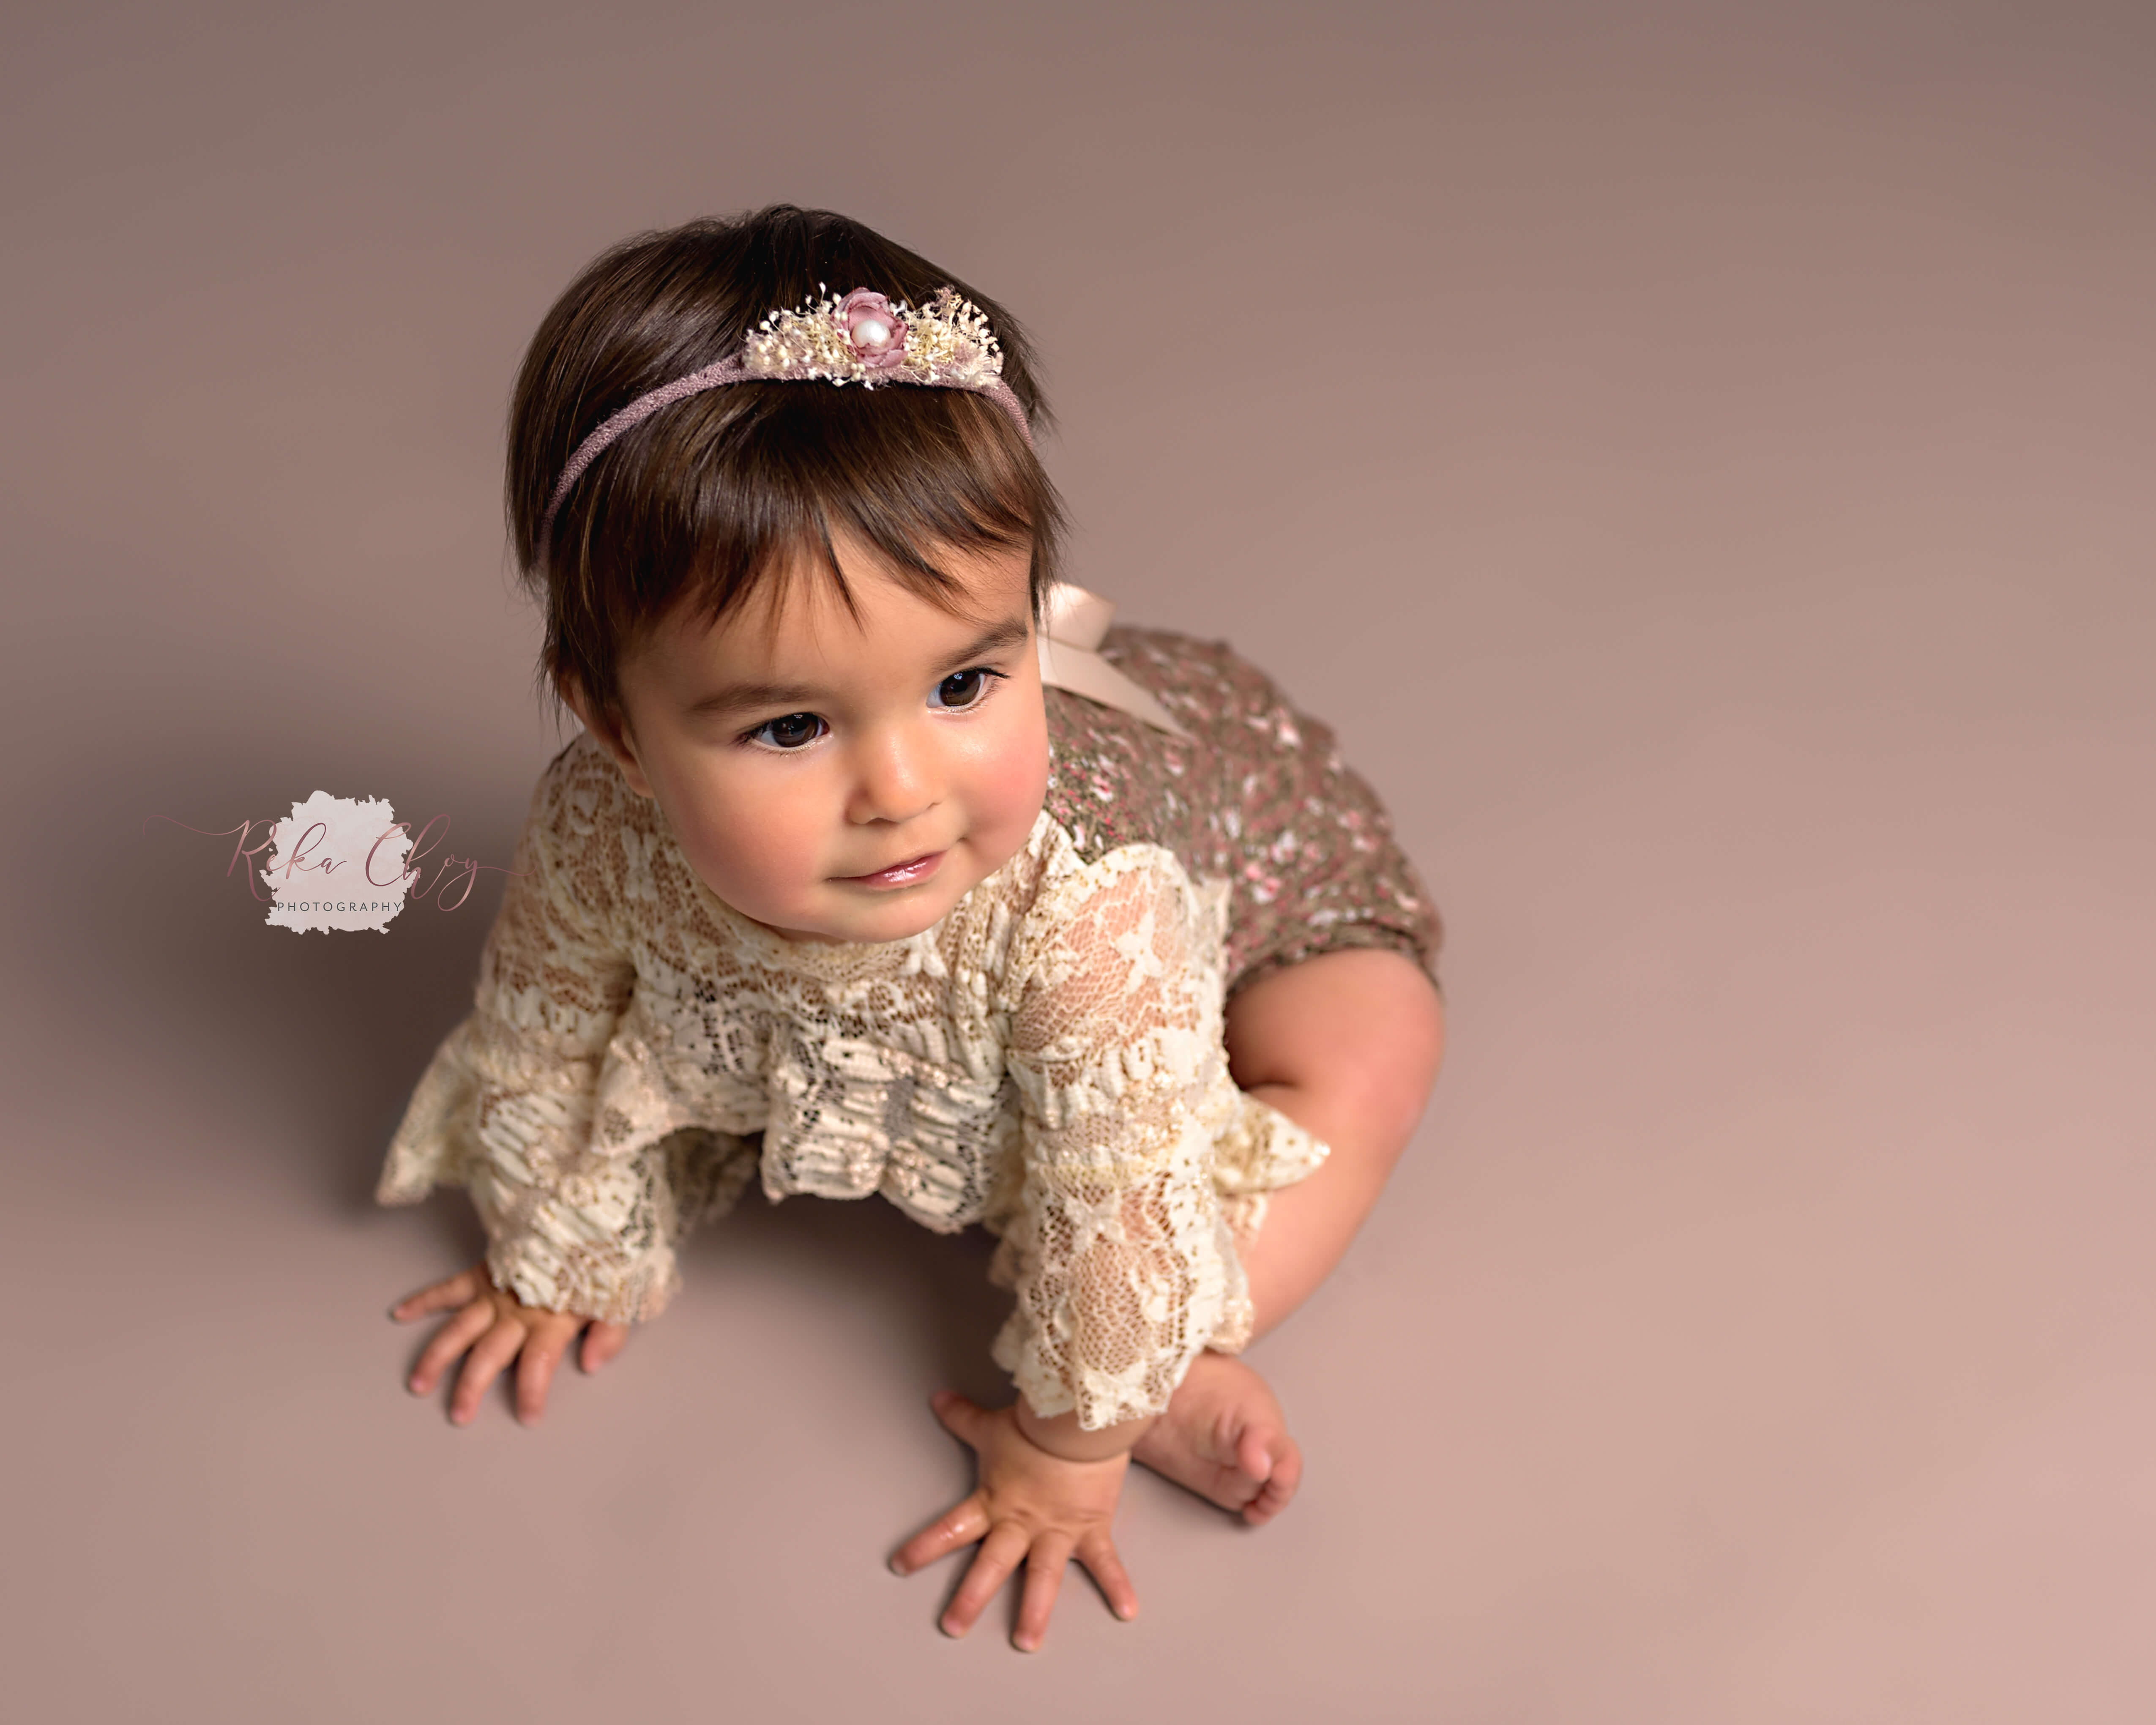 baby girl at sitter photo session wearing headband